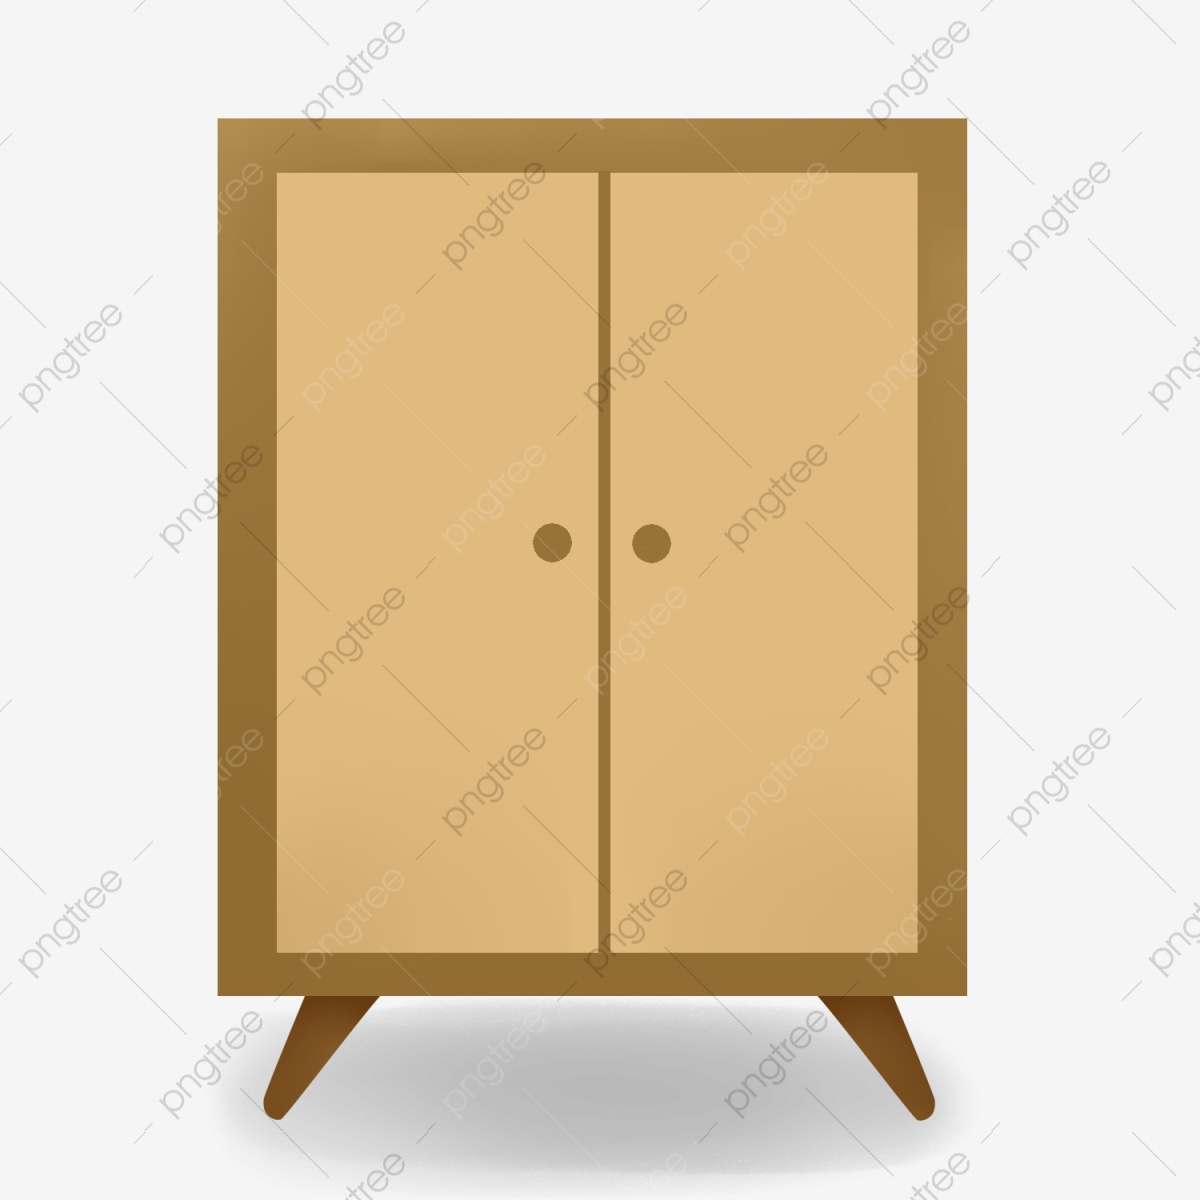 Cartoon Hand Drawn Wardrobe Cabinet Locker Hand Drawn Cartoon Locker Cabinet Png Transparent Clipart Image And Psd File For Free Download